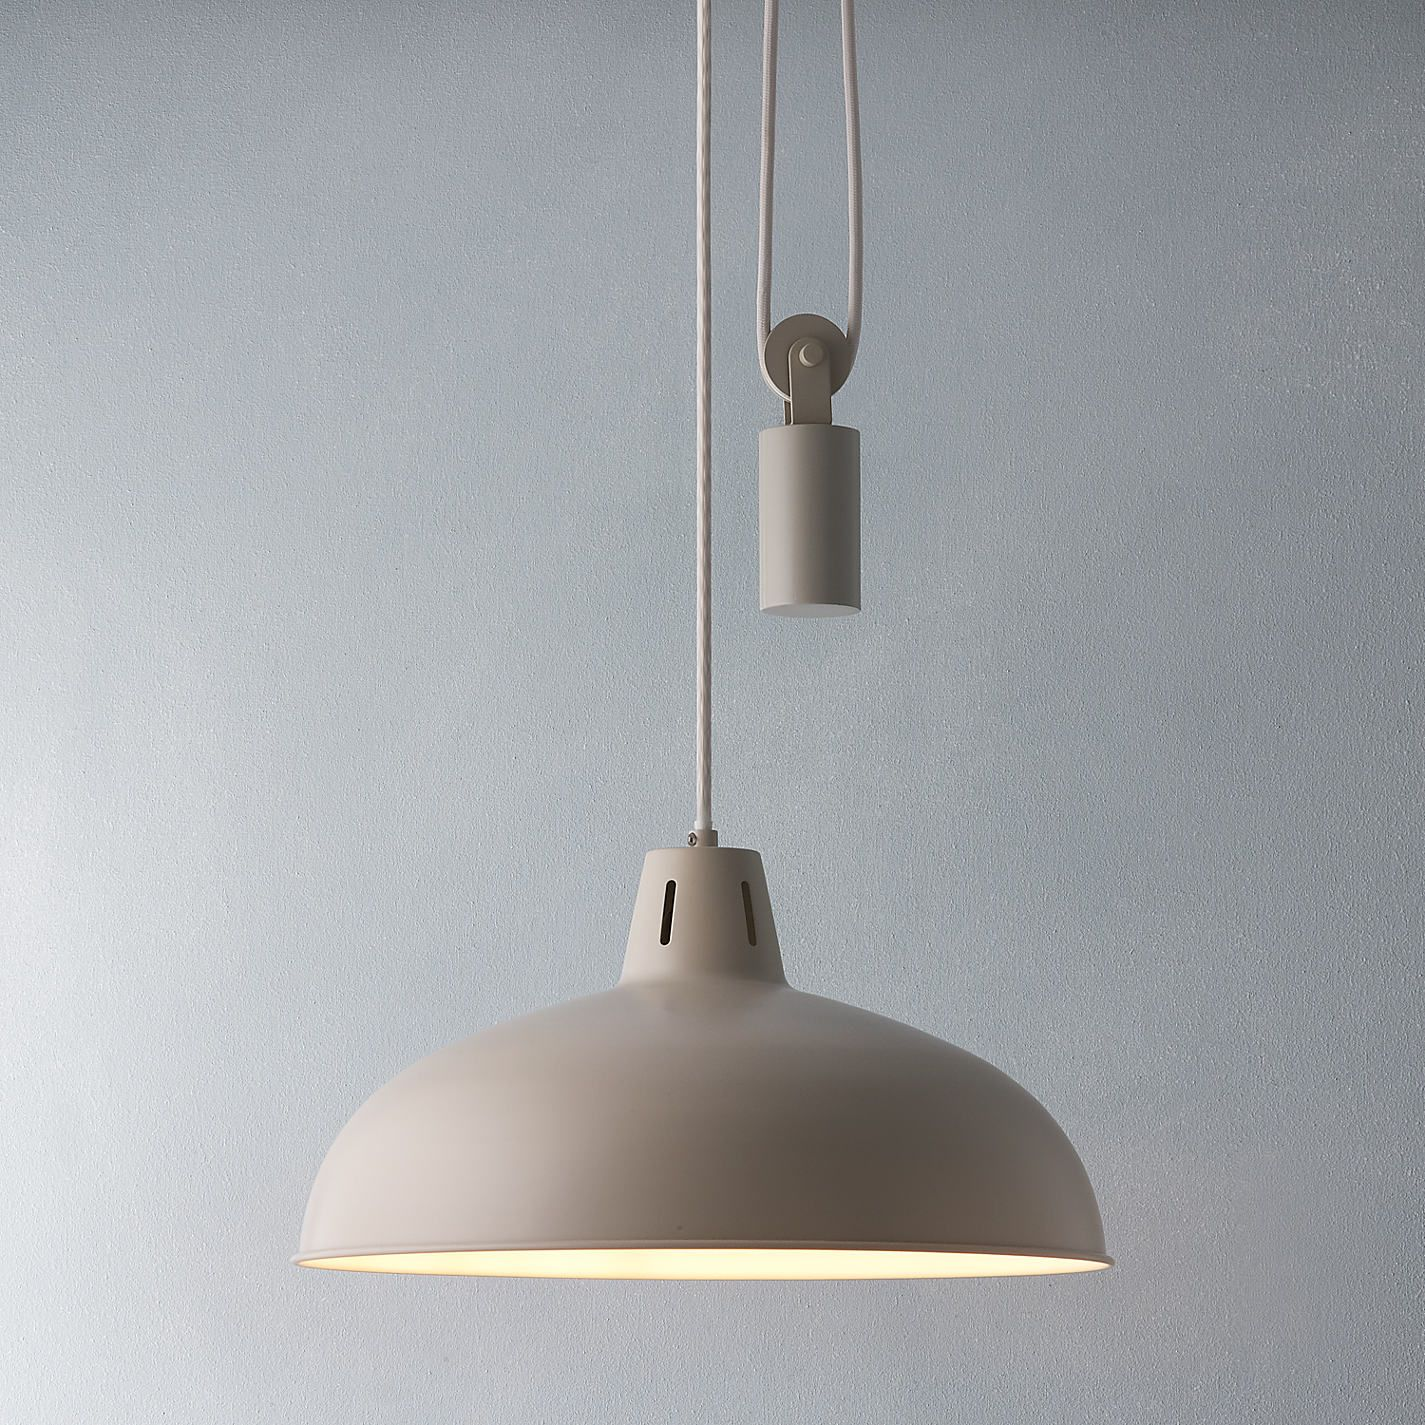 rise and fall ceiling pendant light kitchen chandelier lighting images about Adjustable Pendant Light on Pinterest Chandelier lighting Ceiling lamps and